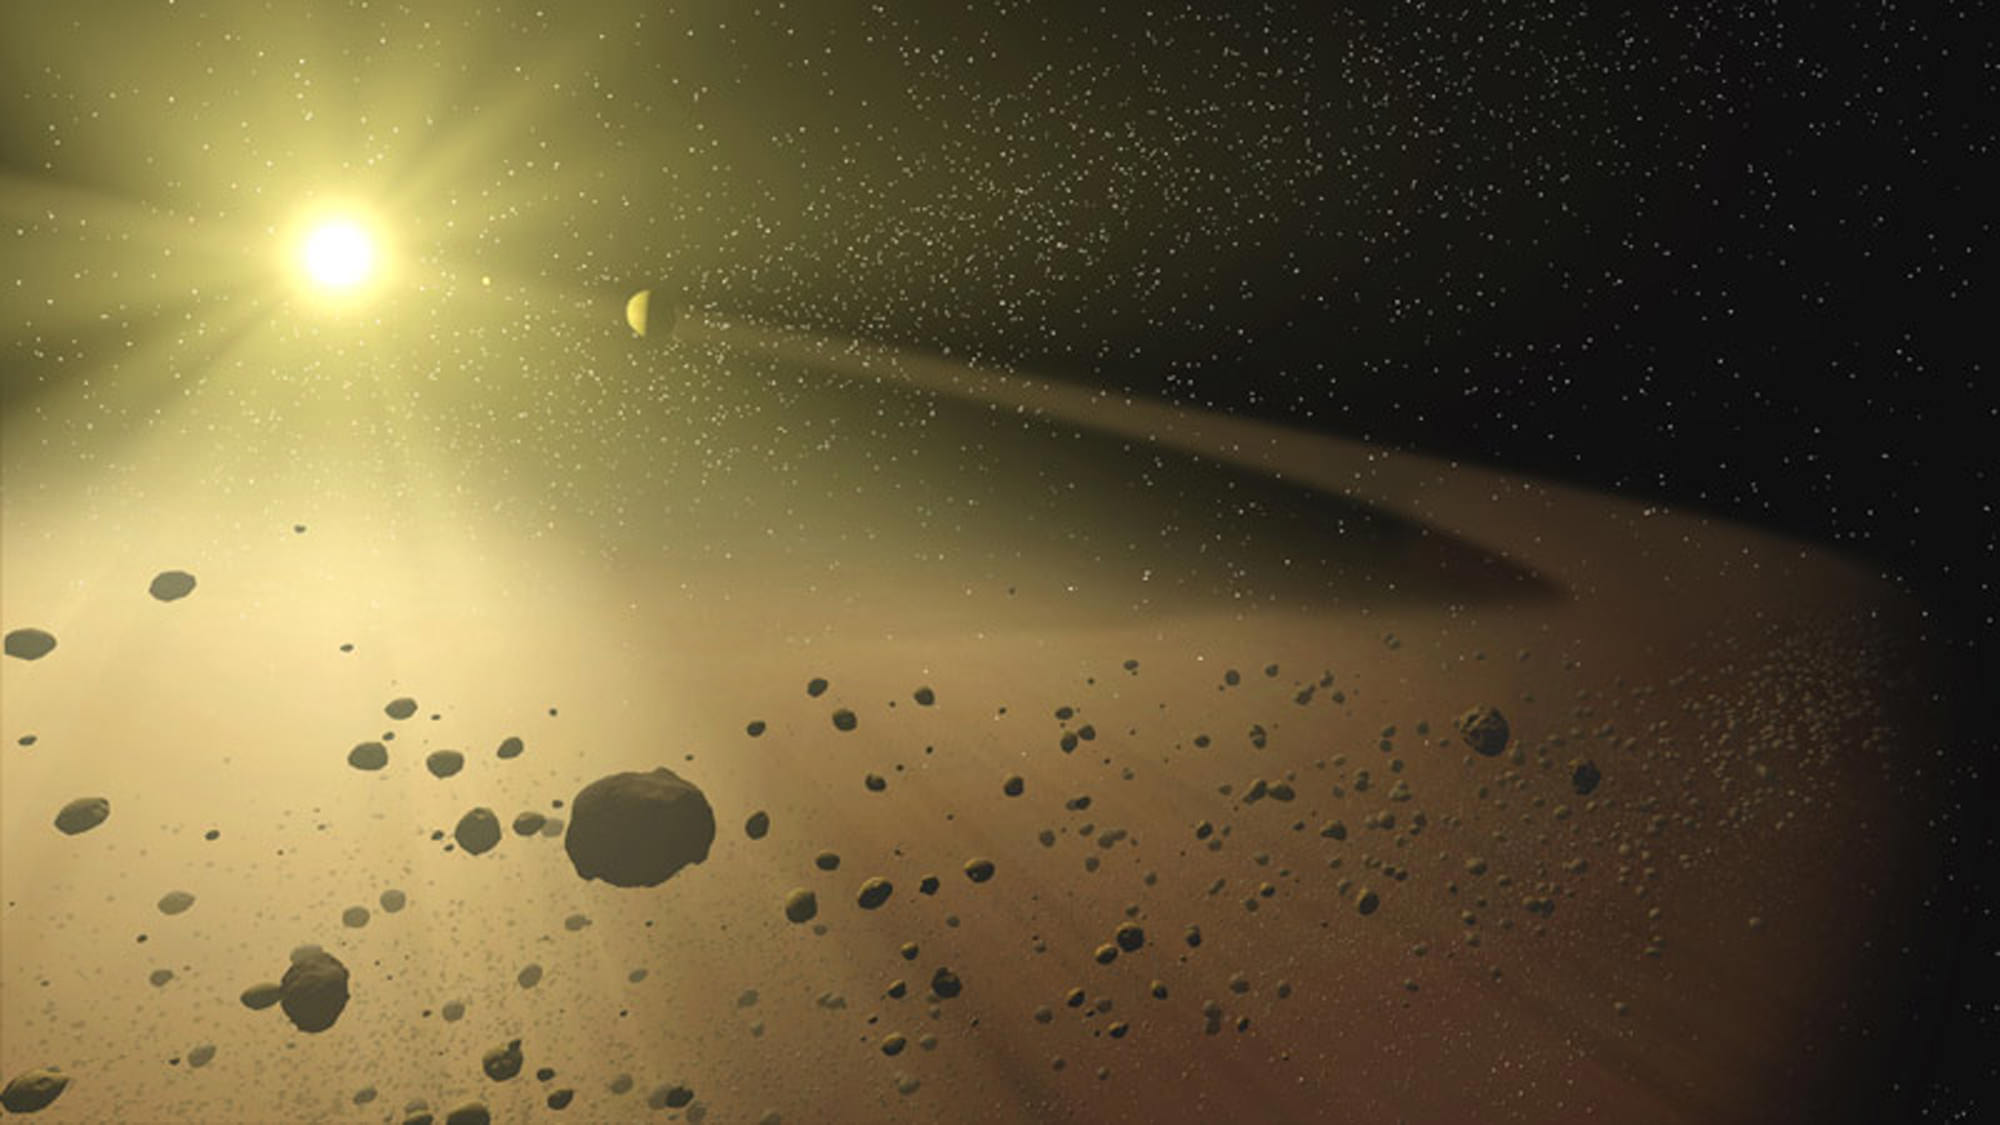 Artist's impression of the asteroid belt. Image credit: NASA/JPL-Caltech - Universe Today